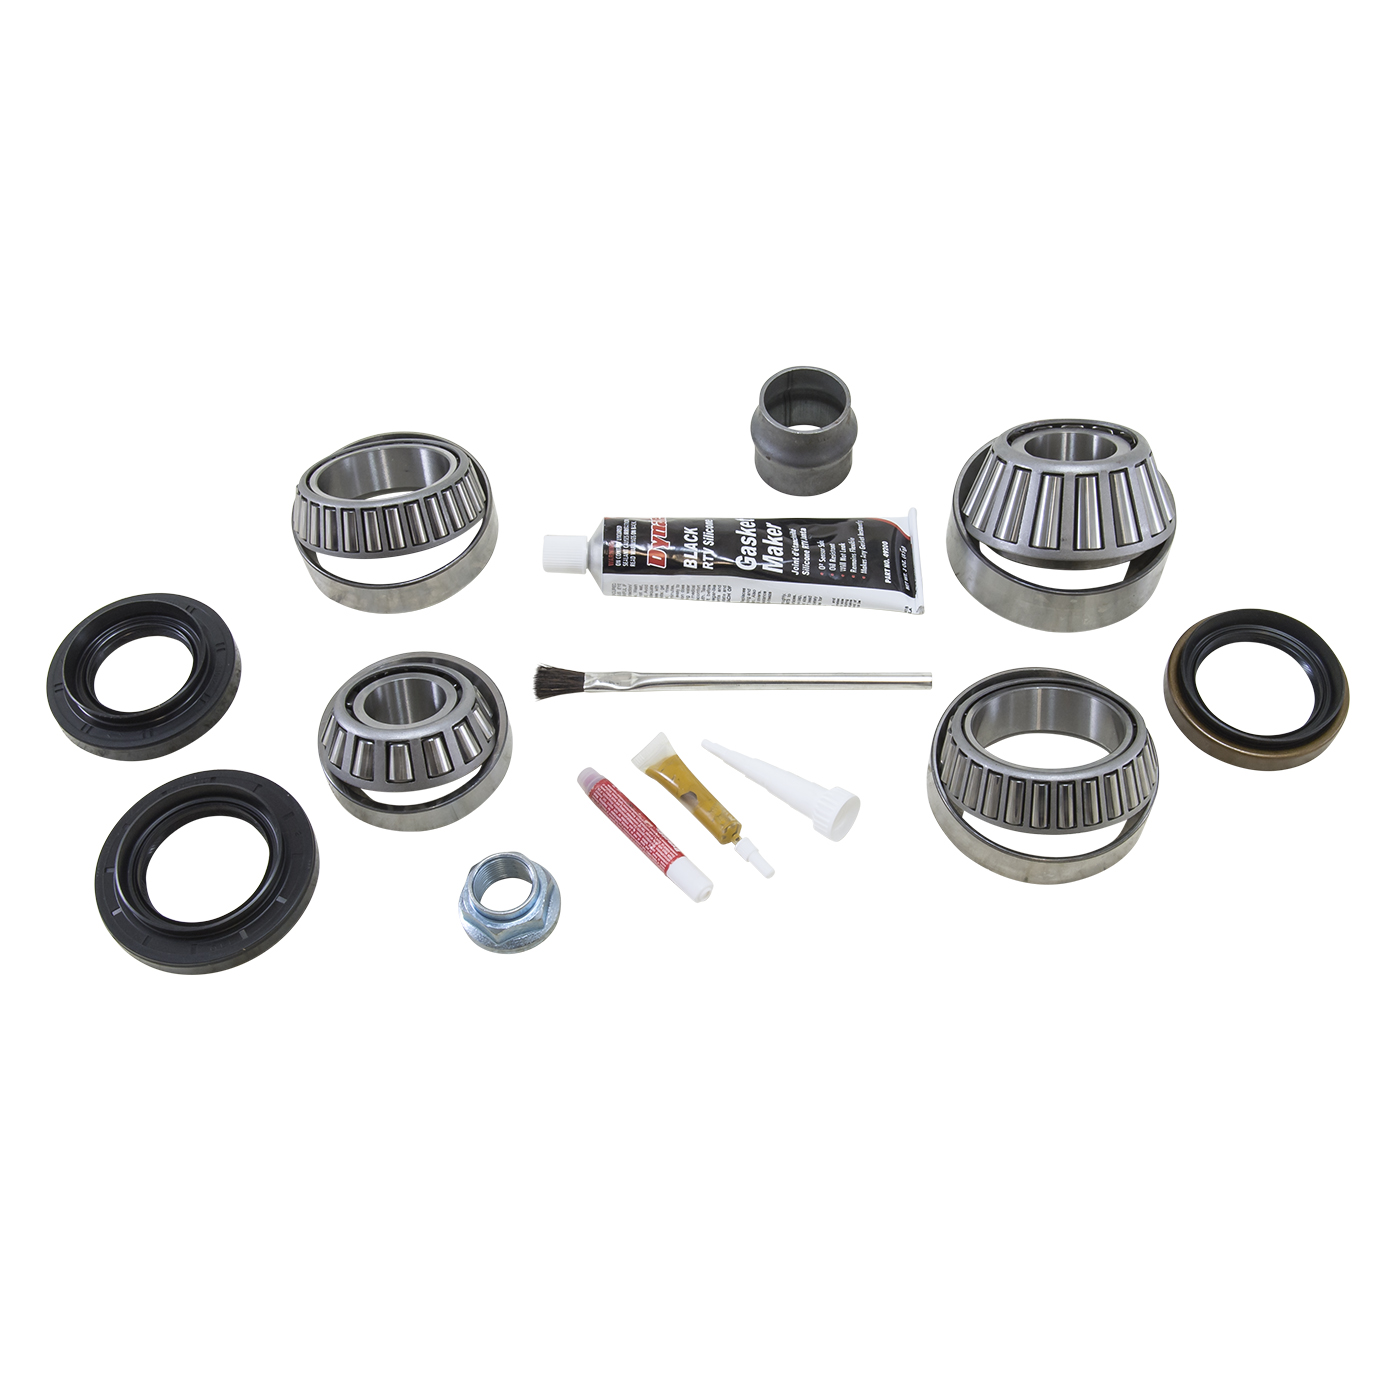 BK TLC-REV-A - Yukon Bearing install kit for '91-'97 Toyota Landcruiser front differential